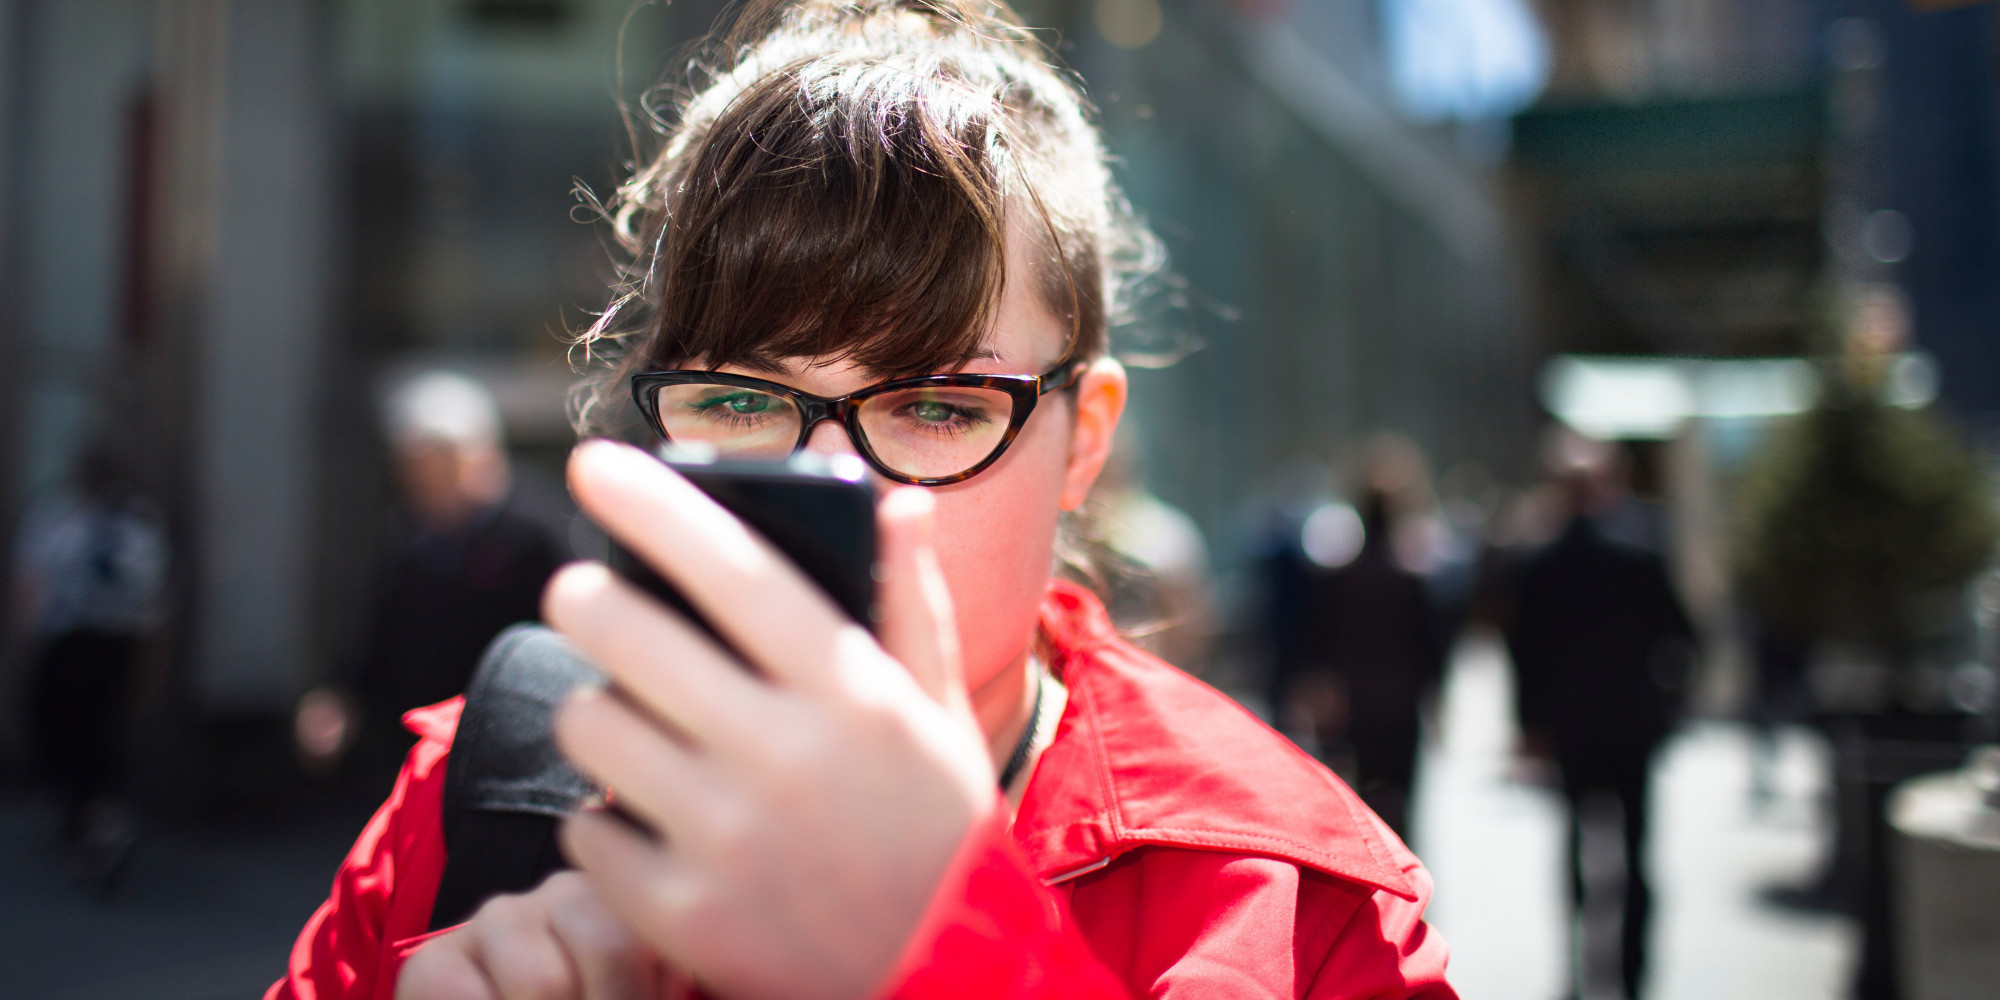 Woman on city street looking at smartphone